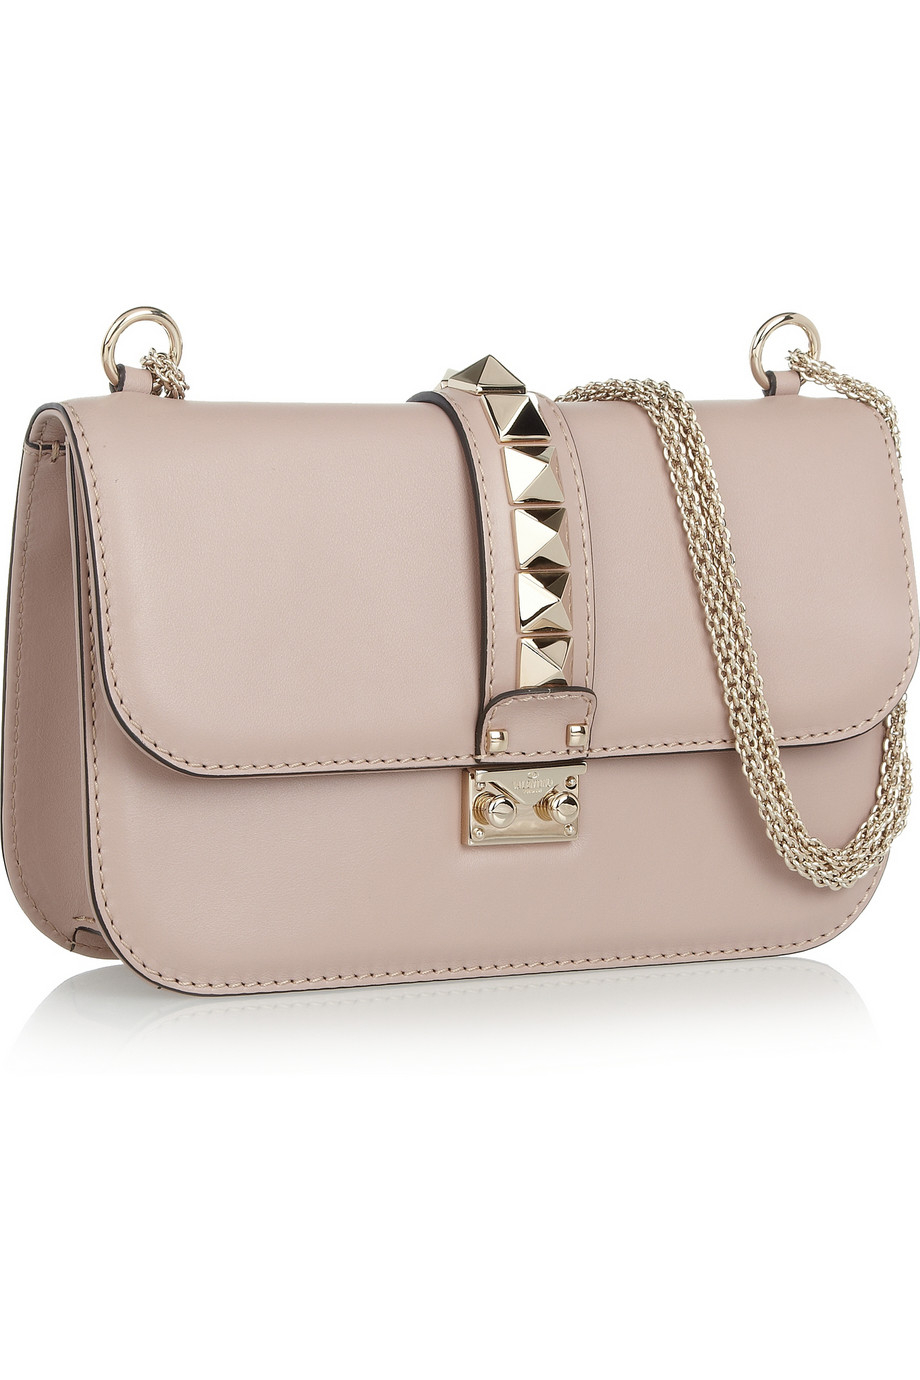 NWT Valentino Glam Lock Beaded Butterfly Bag | Lollipuff